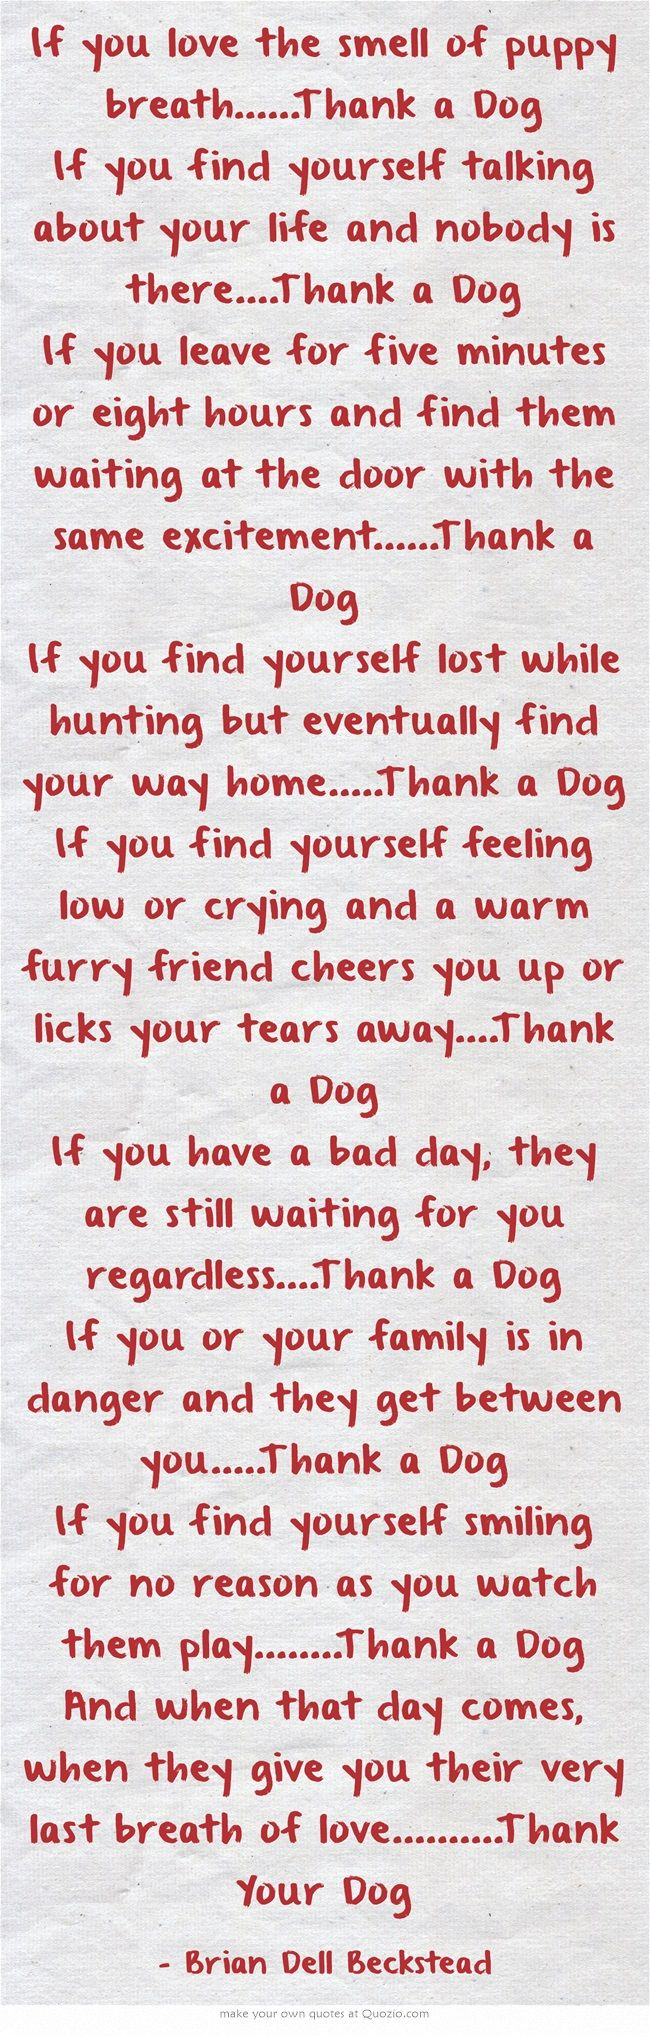 I thank a dog everyday of my life. I also thank God for the fortune of loving and knowing what dogs are all about, which have helped me realized, they are all about love and loyalty and most of the time they know about those two things, better than some humans.